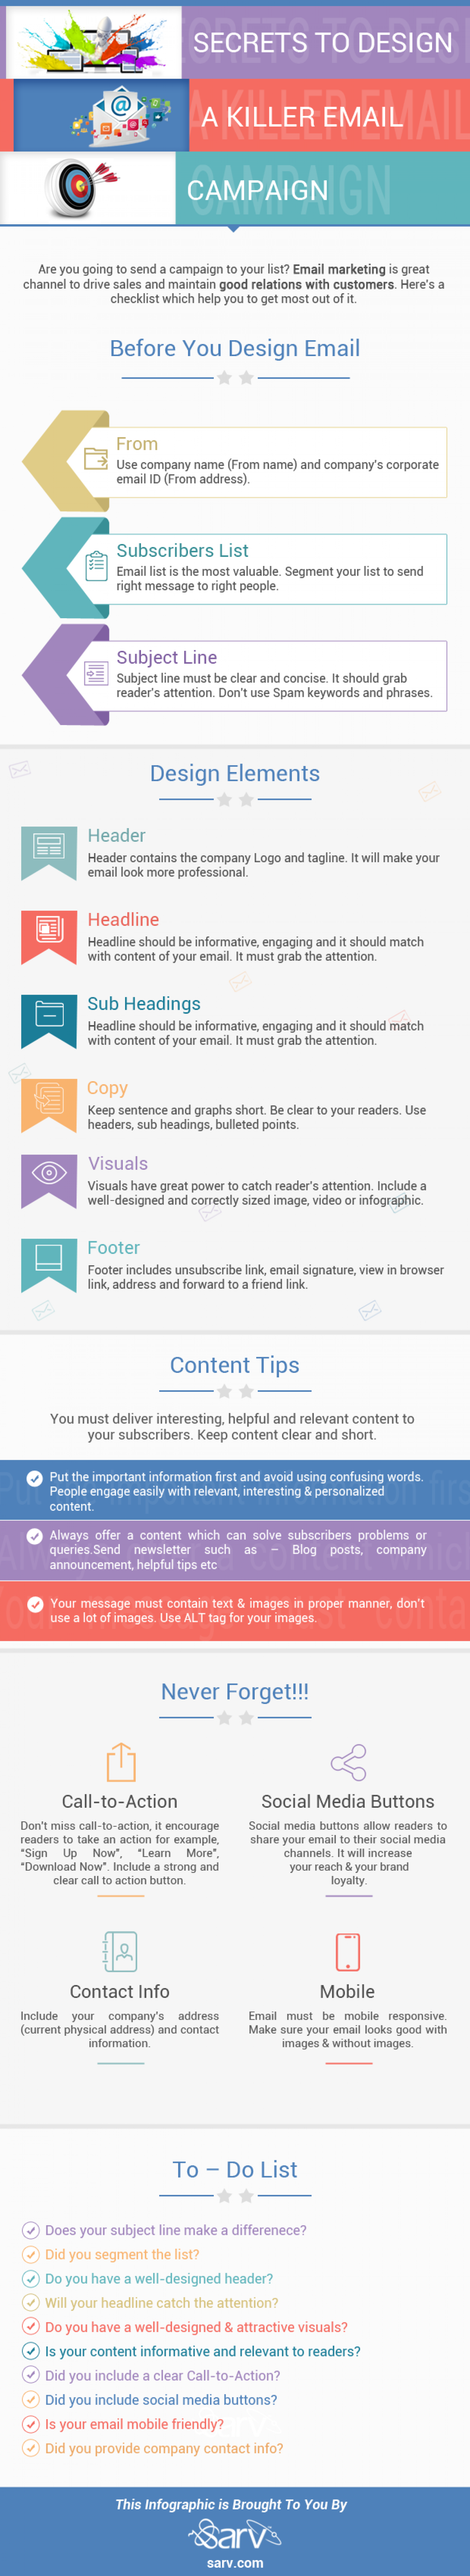 Secrets To Design A Killer Email Campaign Infographic